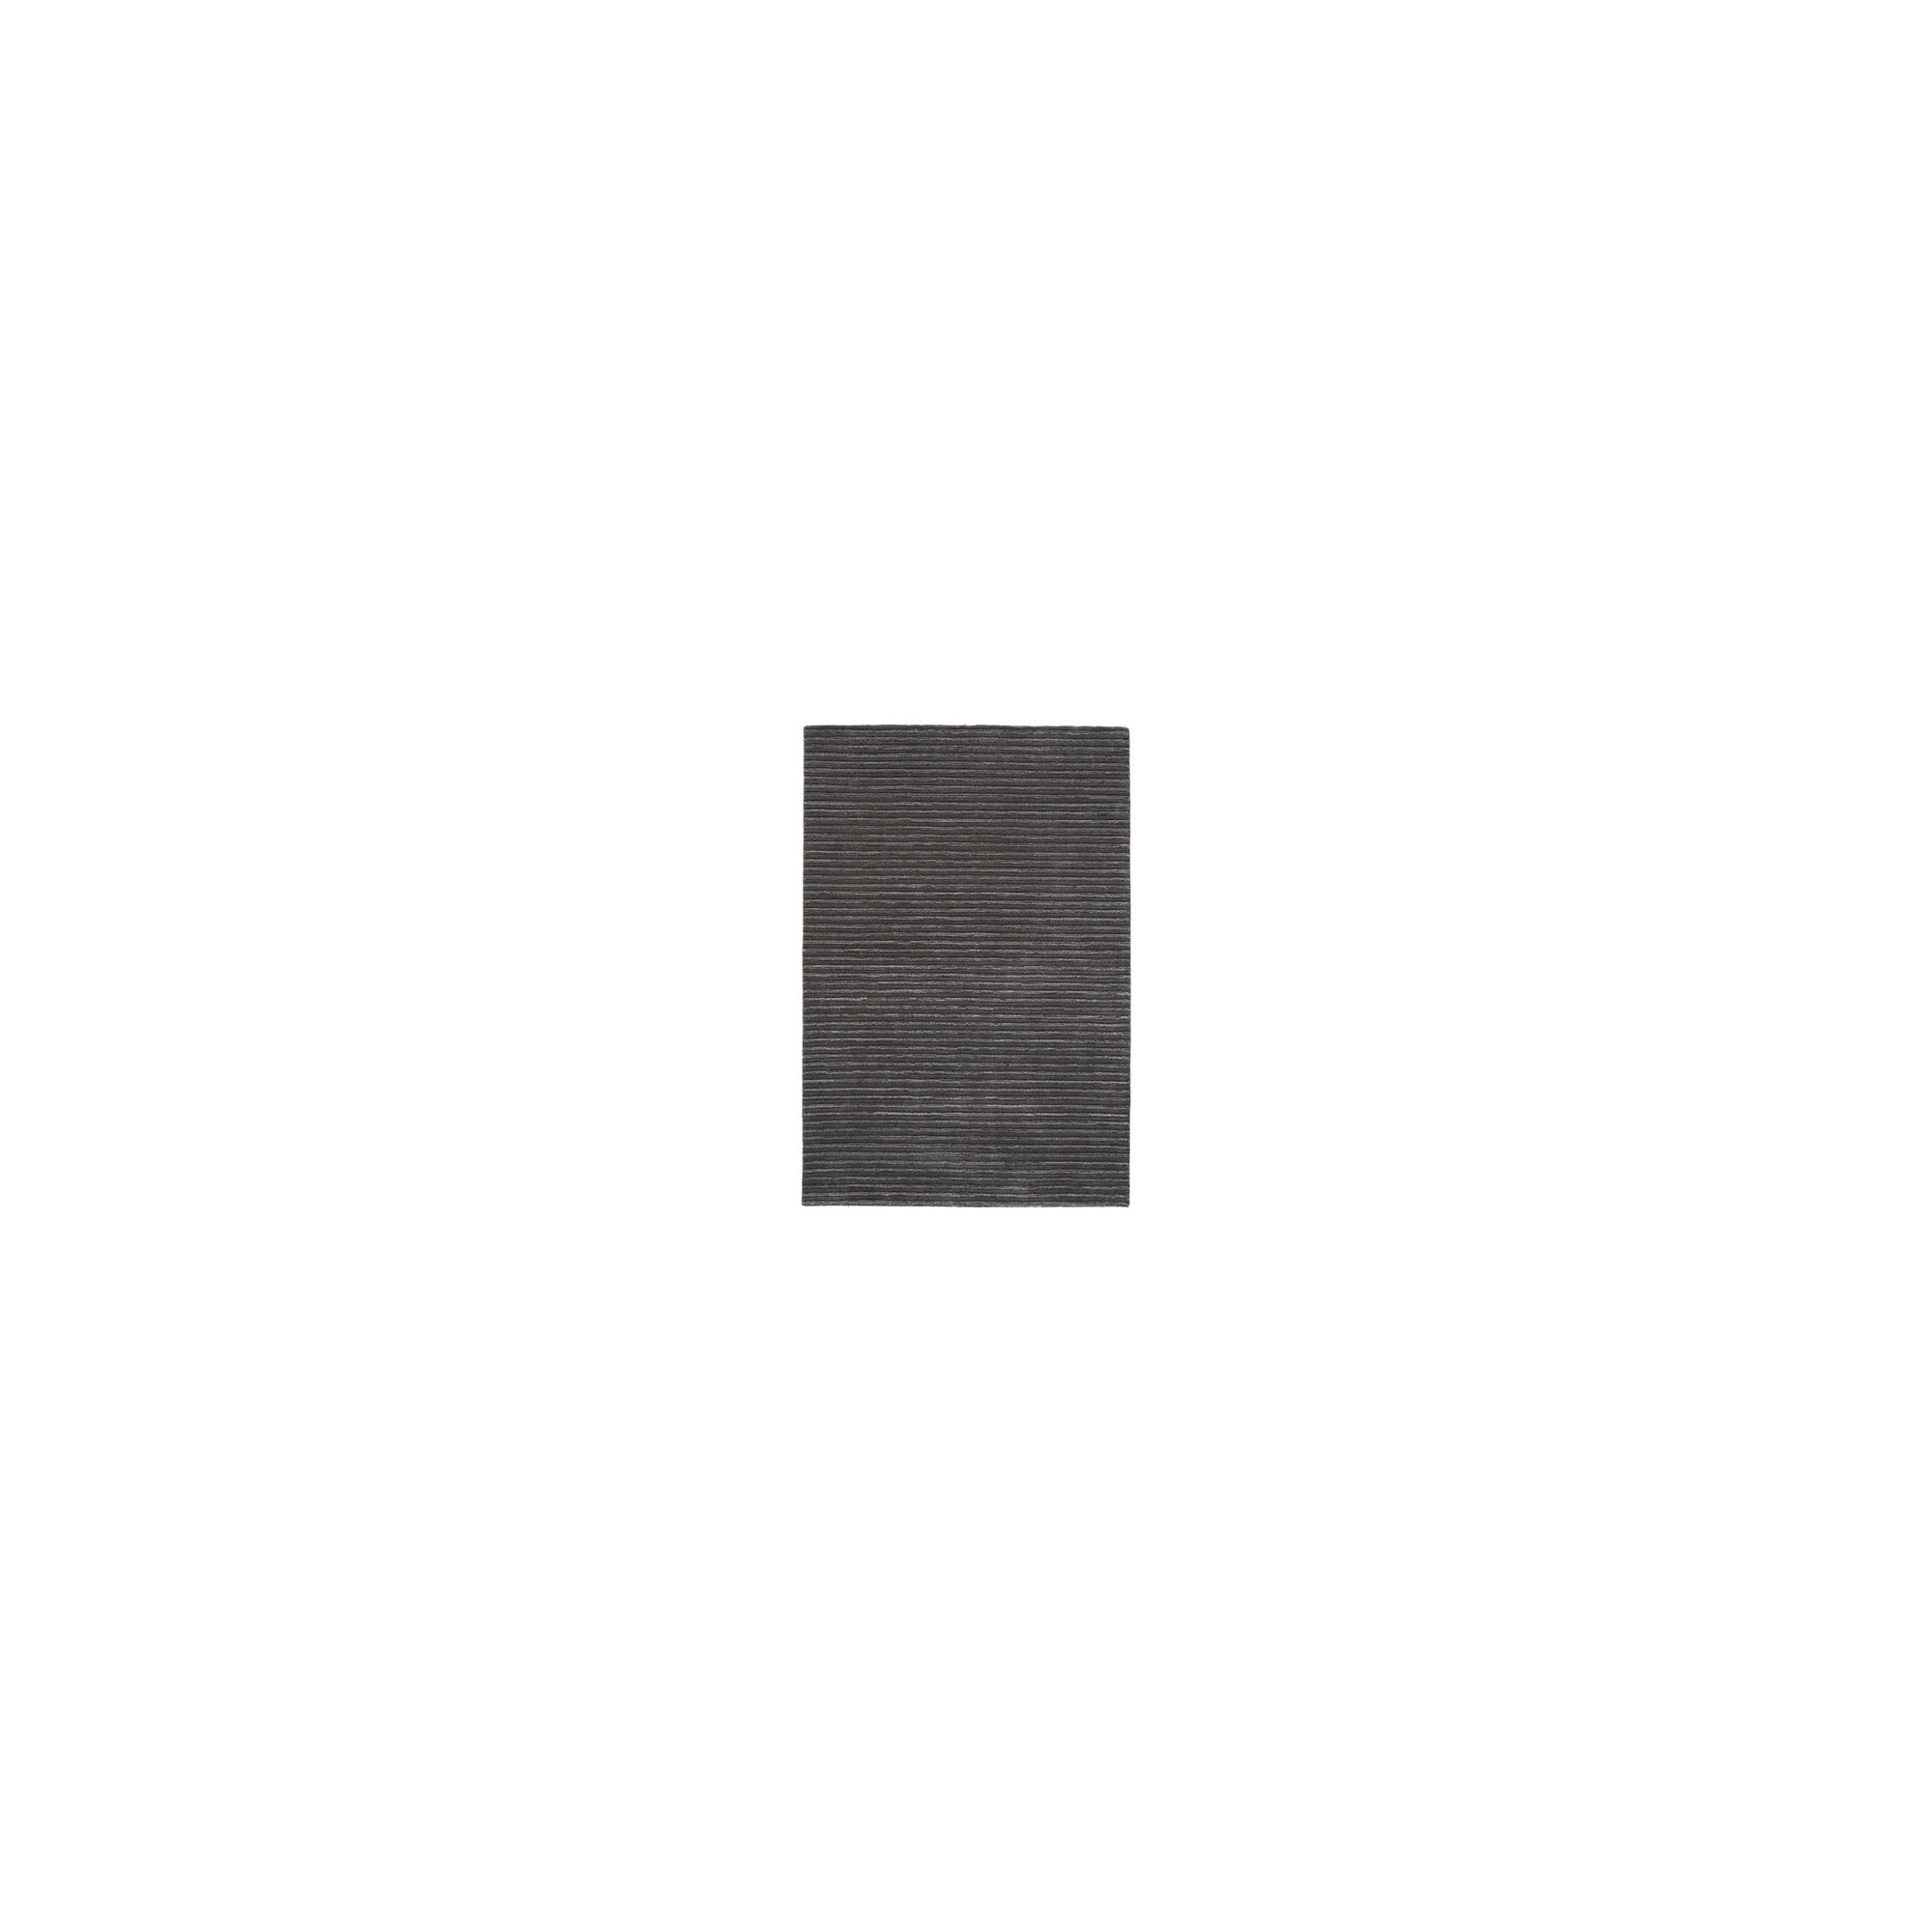 Linie Design Trojka Dark Grey Rug - 200cm x 140cm at Tesco Direct